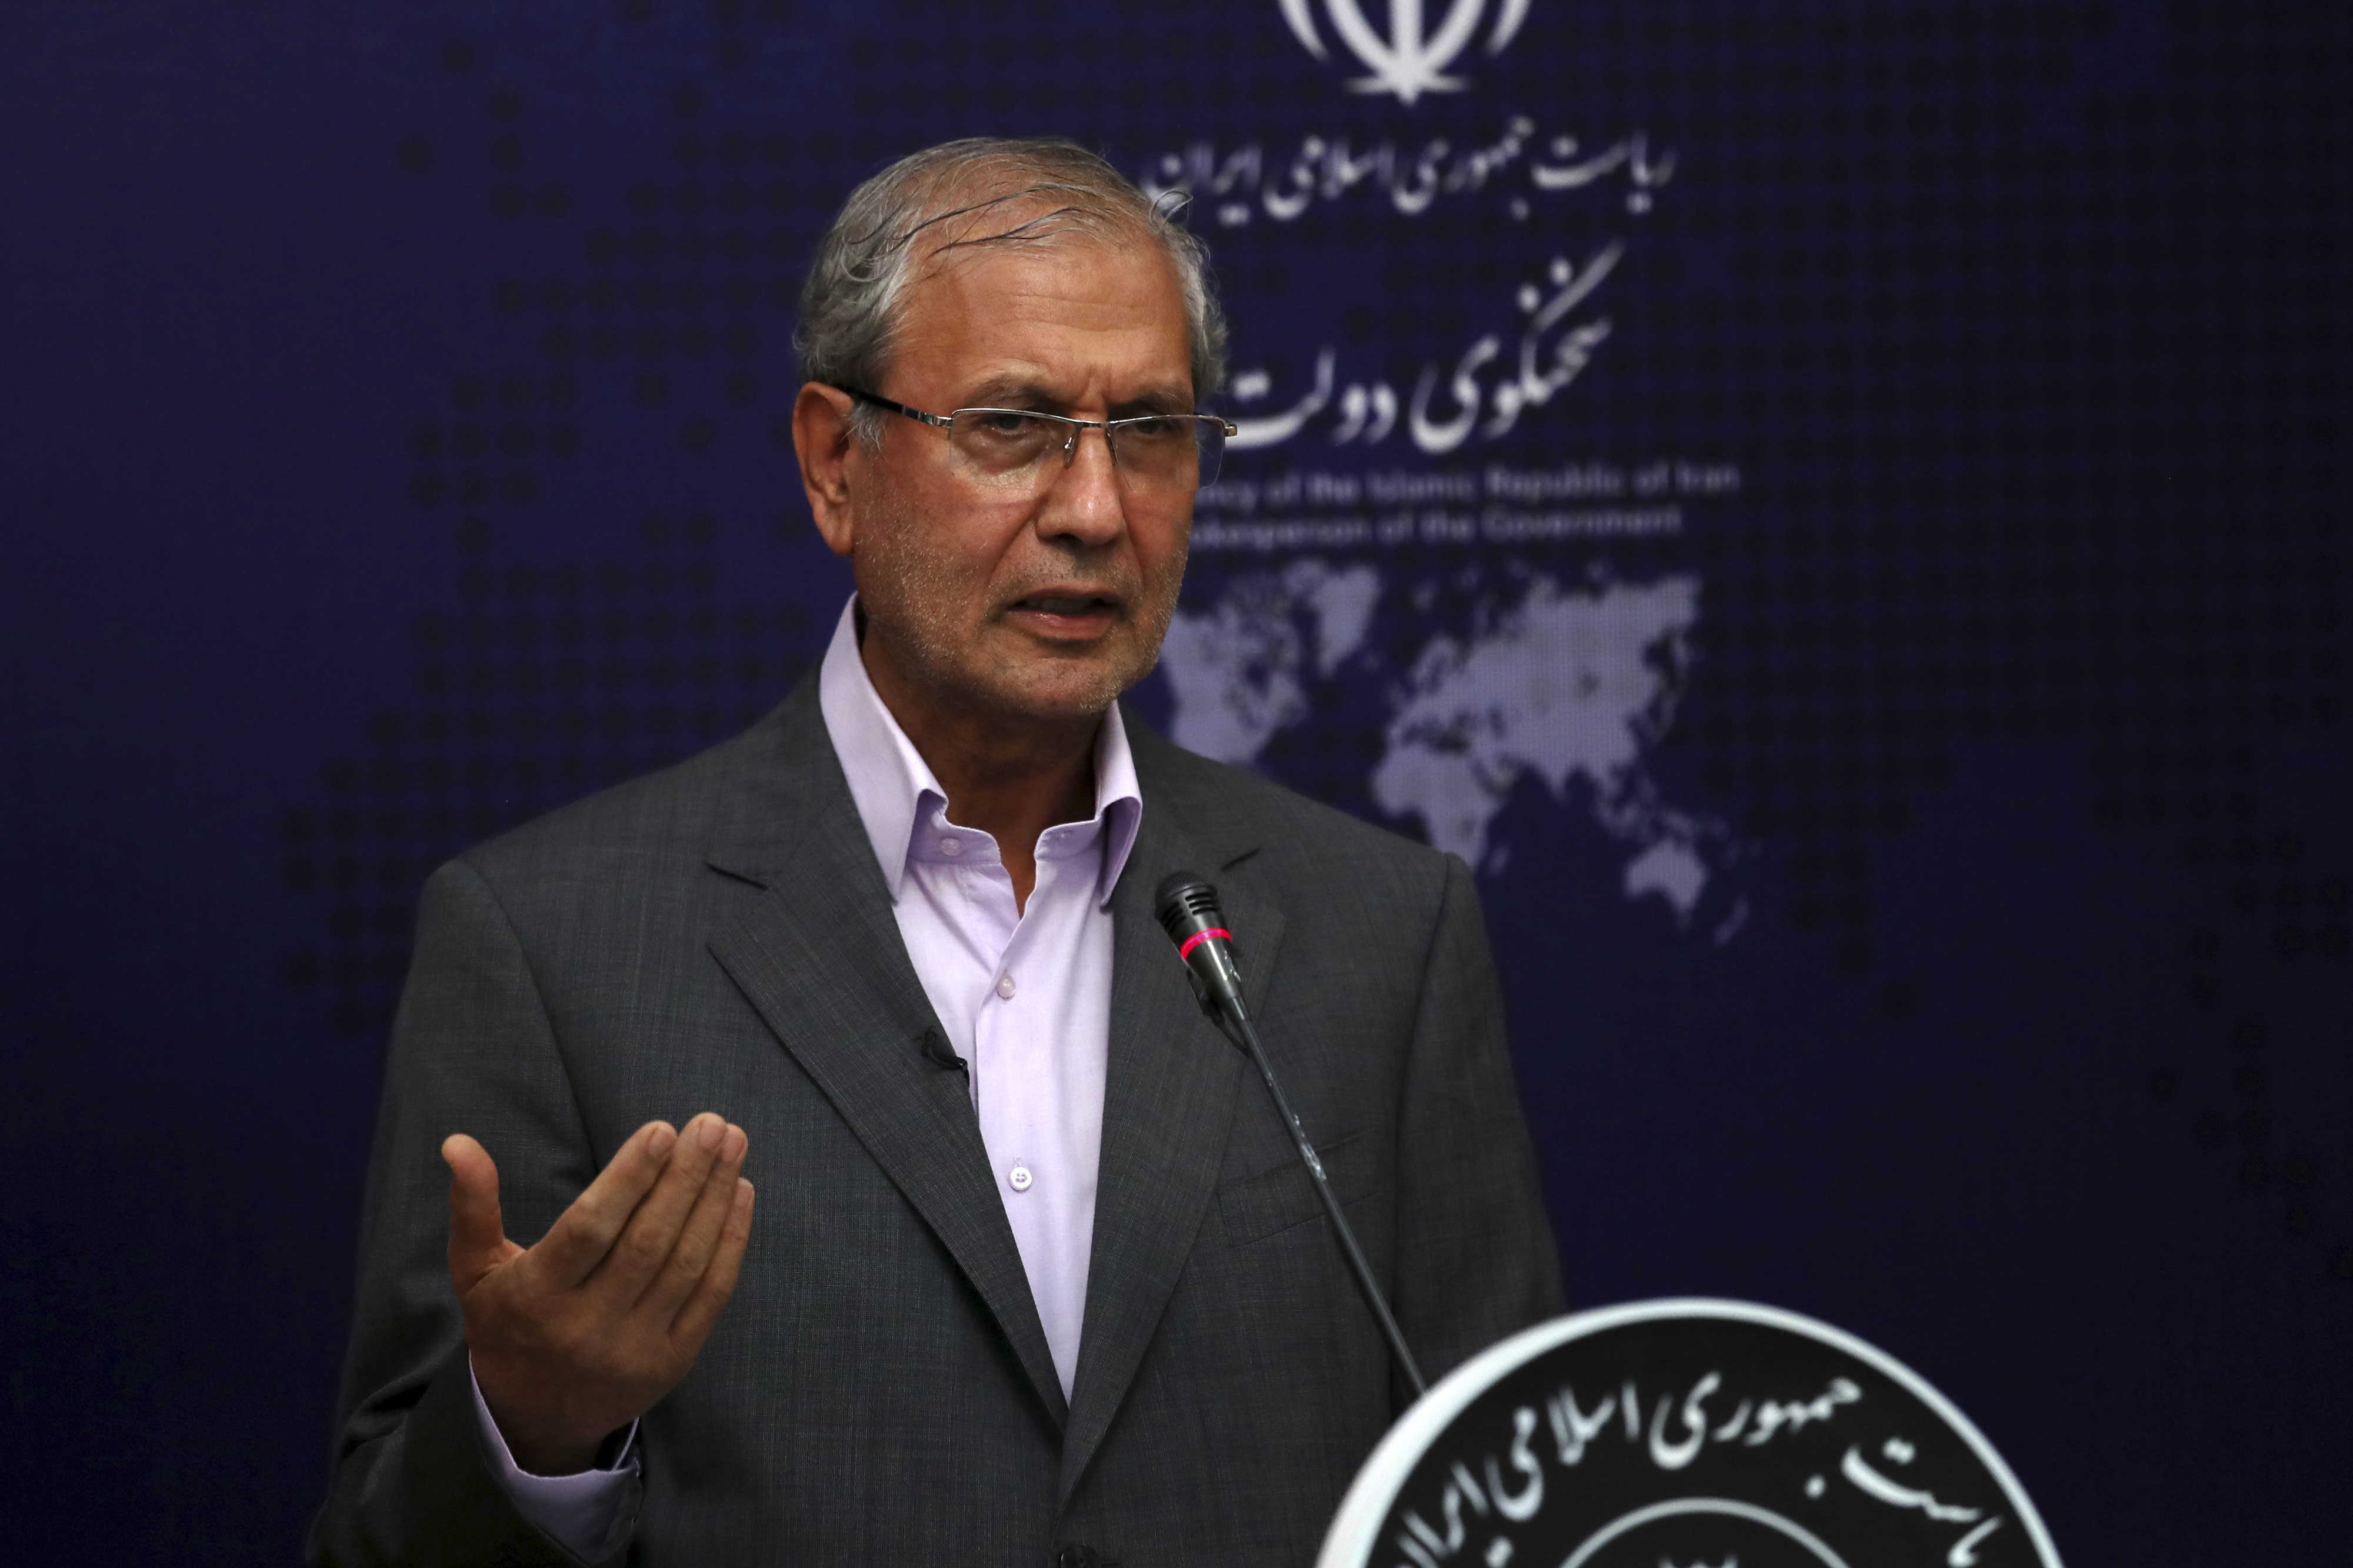 Iran's government spokesman Ali Rabiei speaks in his regular news briefing, Monday, July 22, 2019. Ali Rabiei said that there are diplomatic solutions to the current crisis, but he also defended Iran's actions, three days after Iran's Revolutionary Guard seized a British-flagged oil tanker called Stena Impero, and two weeks after the seizure of an Iranian oil tanker by Gibraltar, a British overseas territory off the southern coast of Spain. (AP Photo/Vahid Salemi)